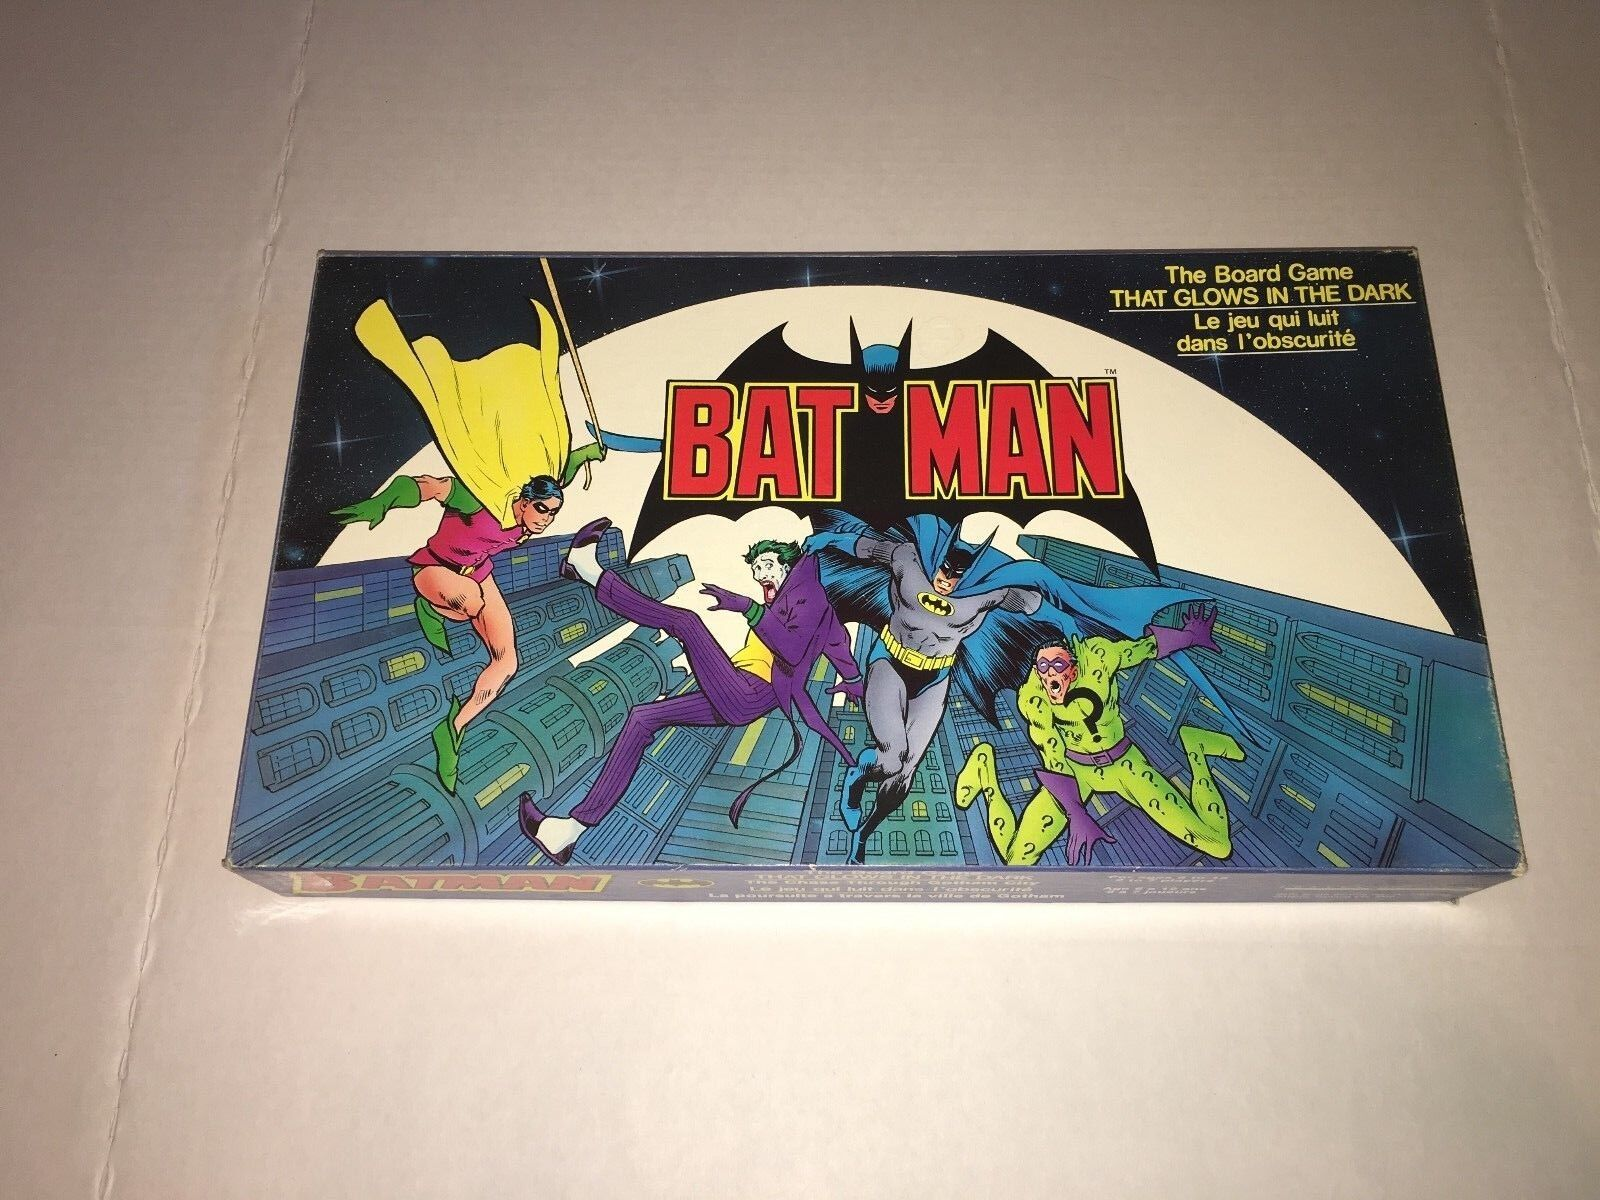 RARE Vintage 1988 BATMAN Boardgame THAT GLOWS IN THE DARK 100% COMPLETE GREAT